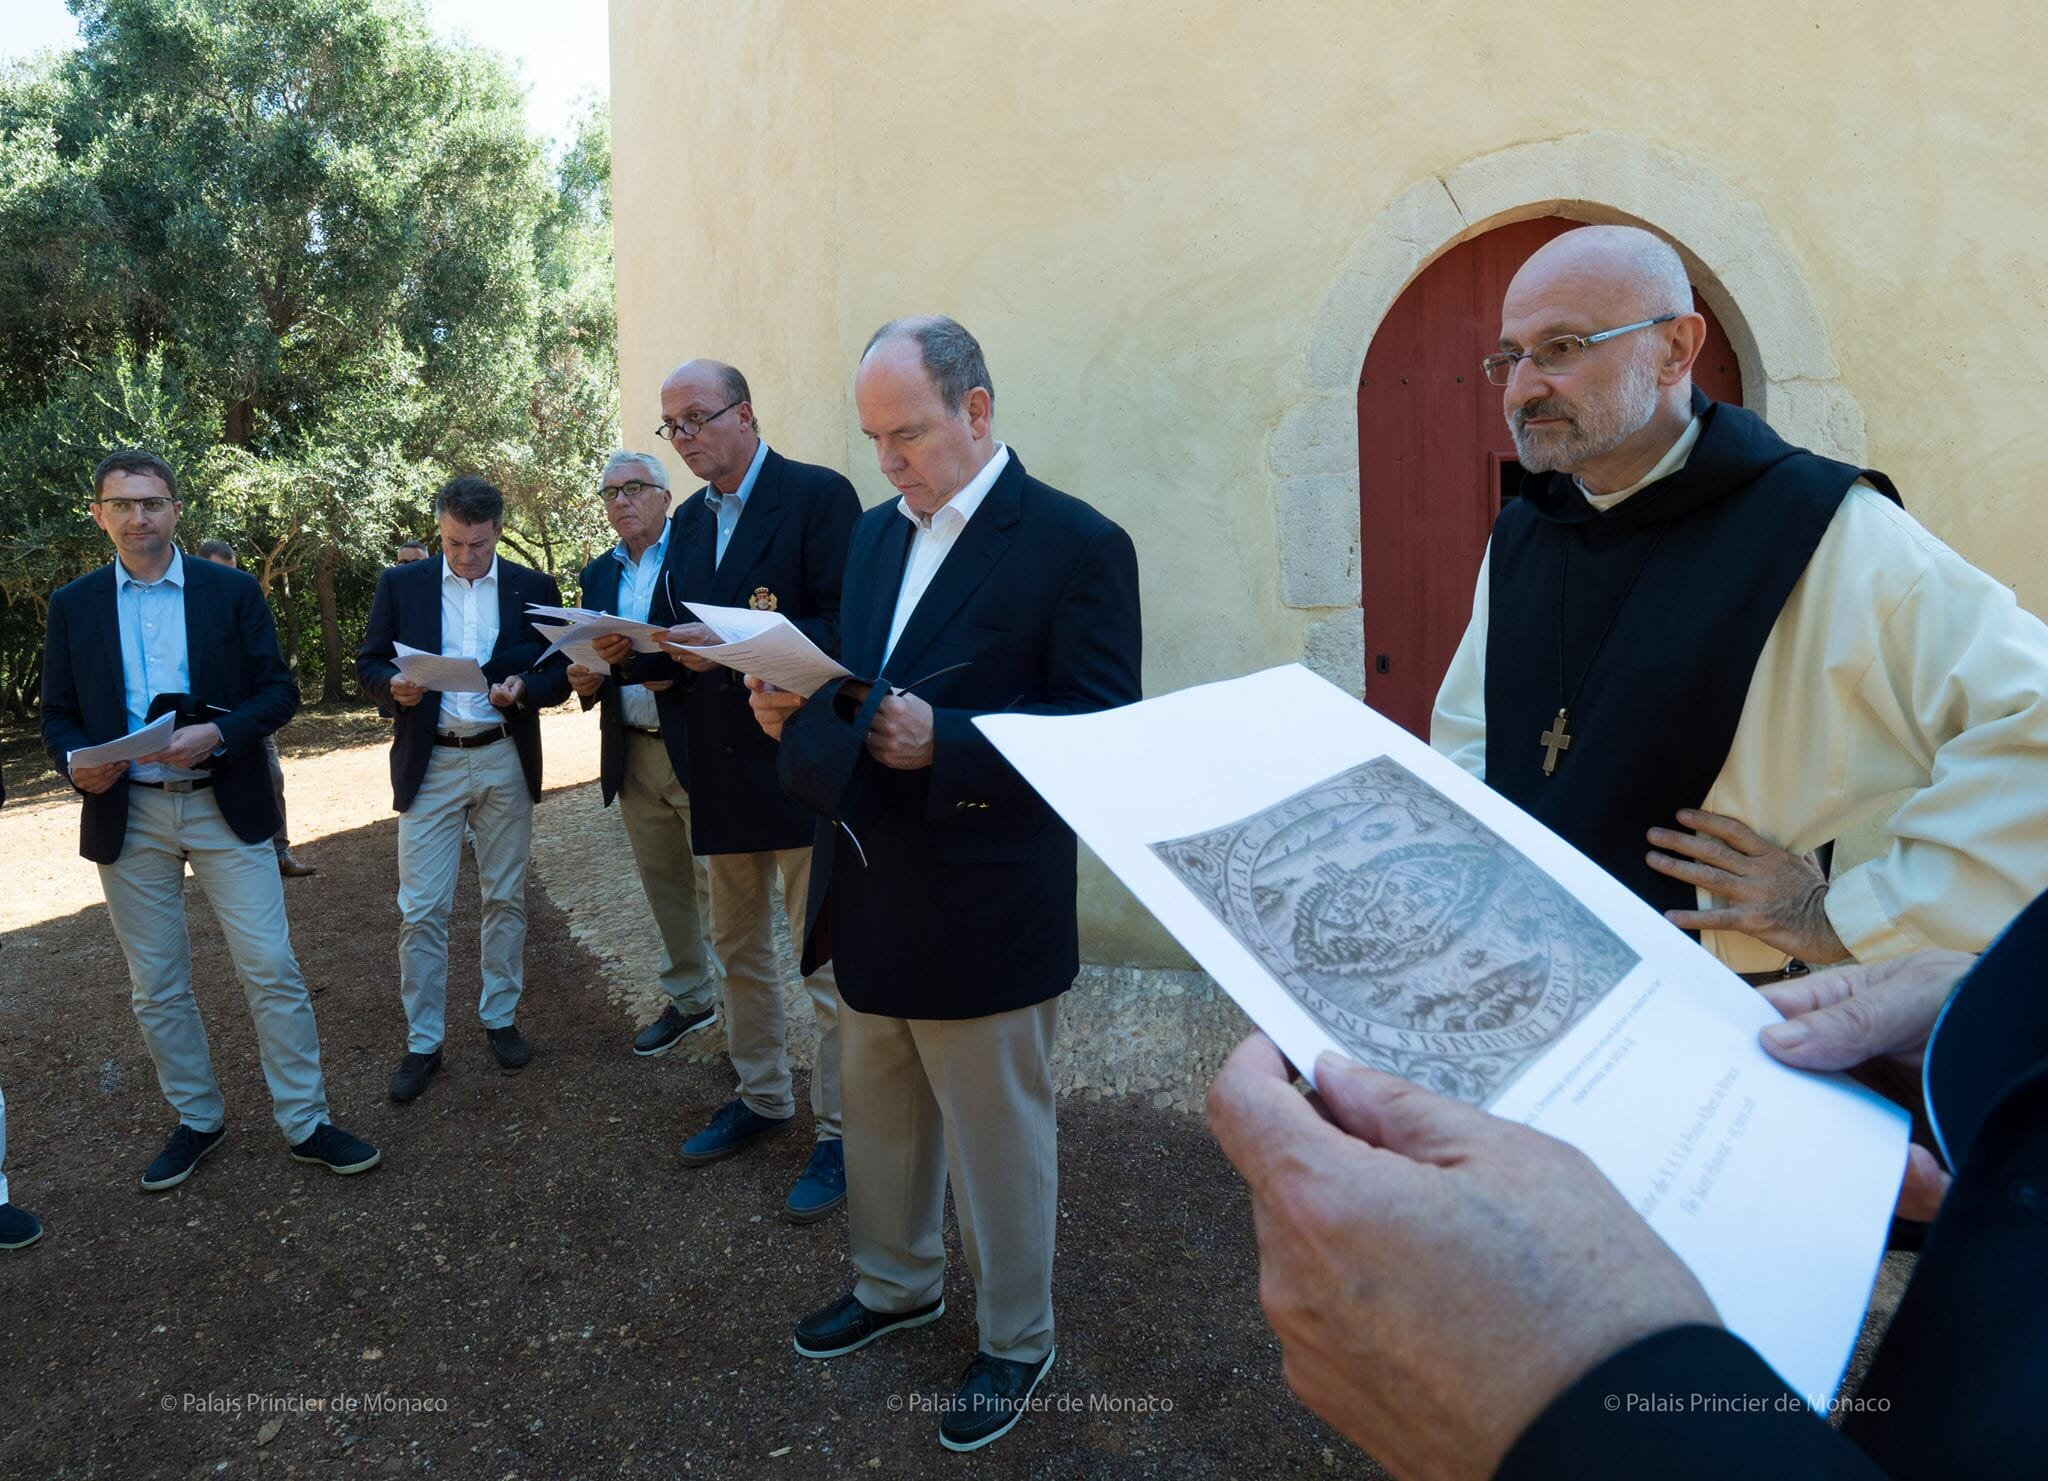 Prince Albert visits Île Saint-Honorat